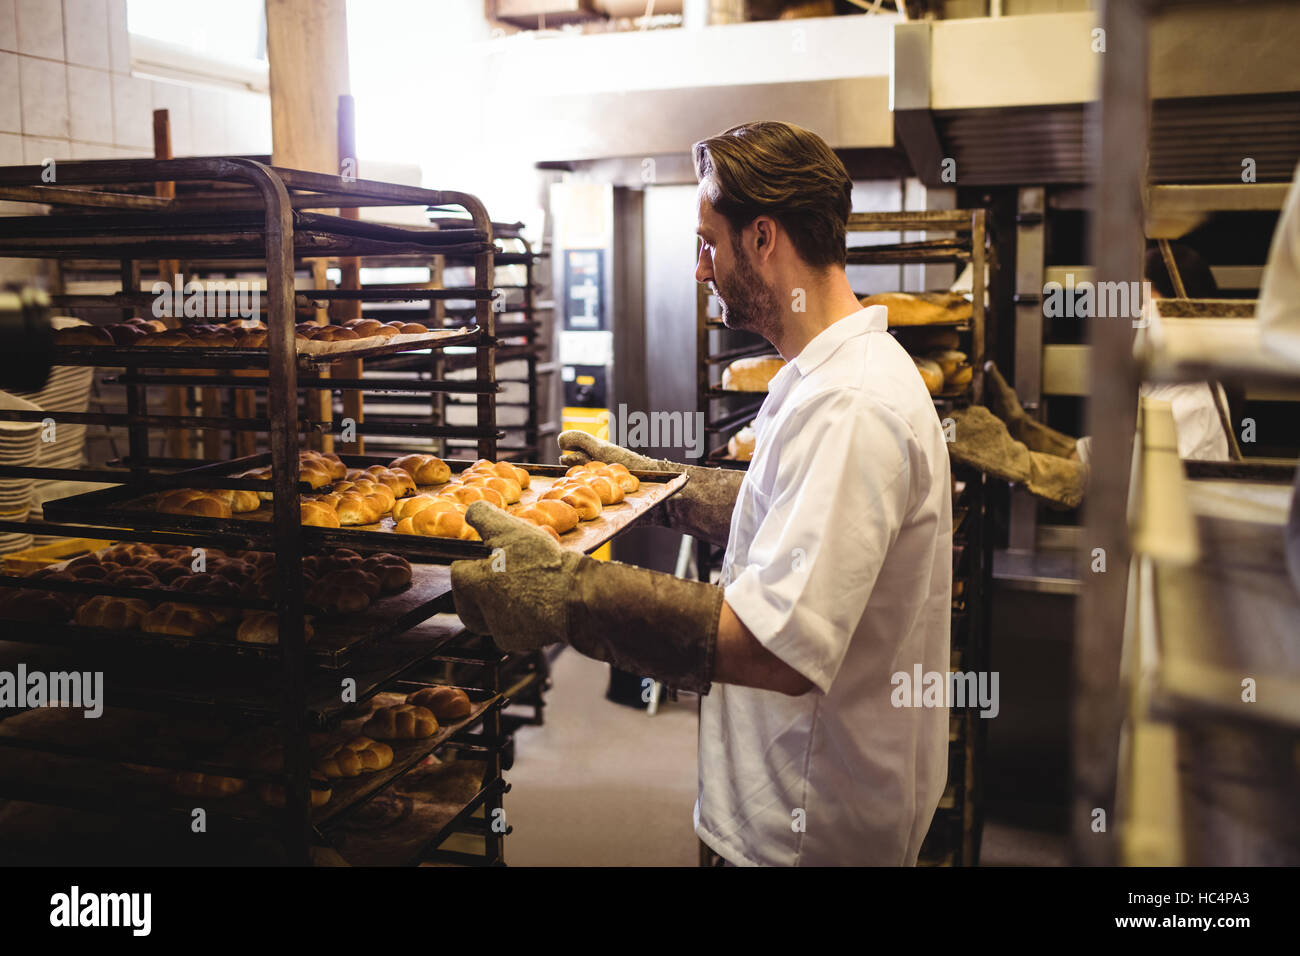 Male baker holding a tray of michetta - Stock Image